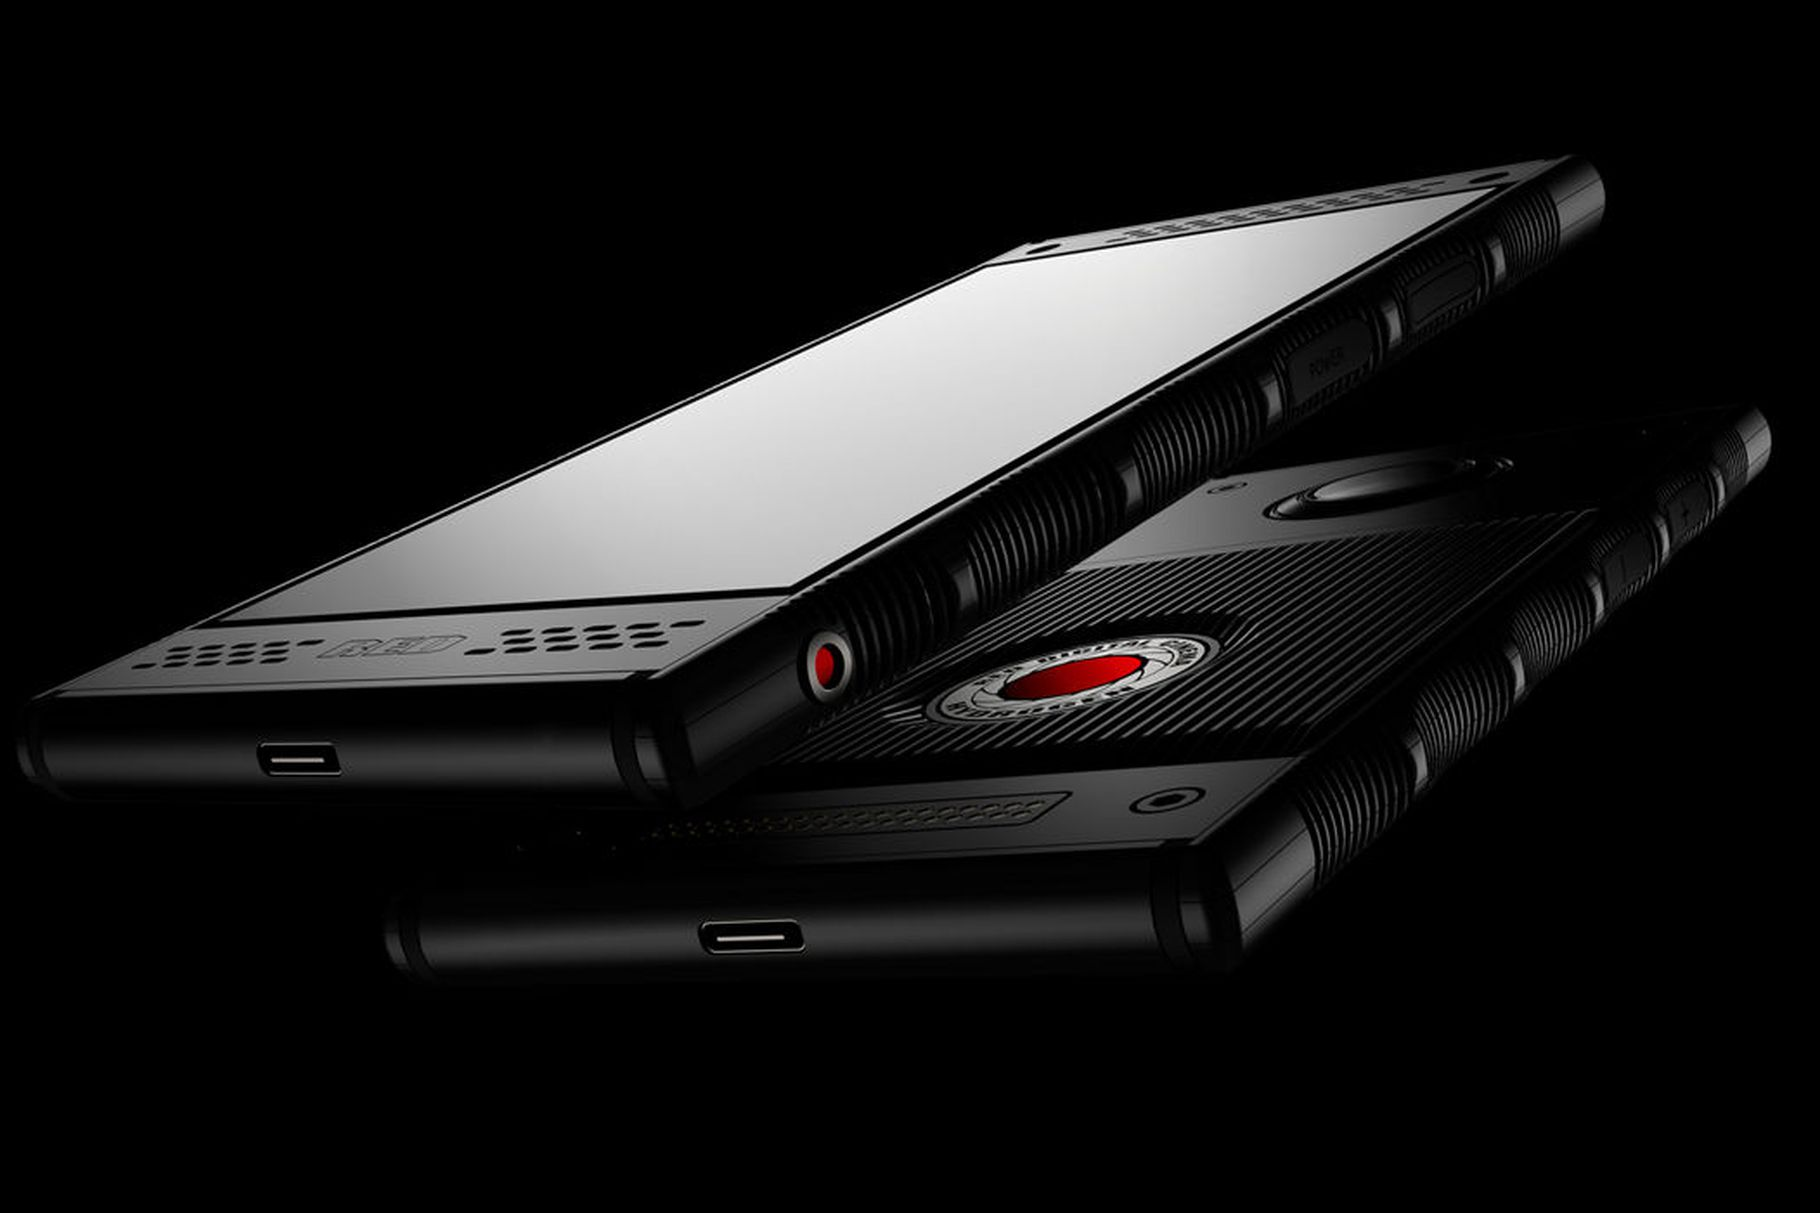 Red's $1300 Holographic Phone Coming to AT&T, Verizon This Summer